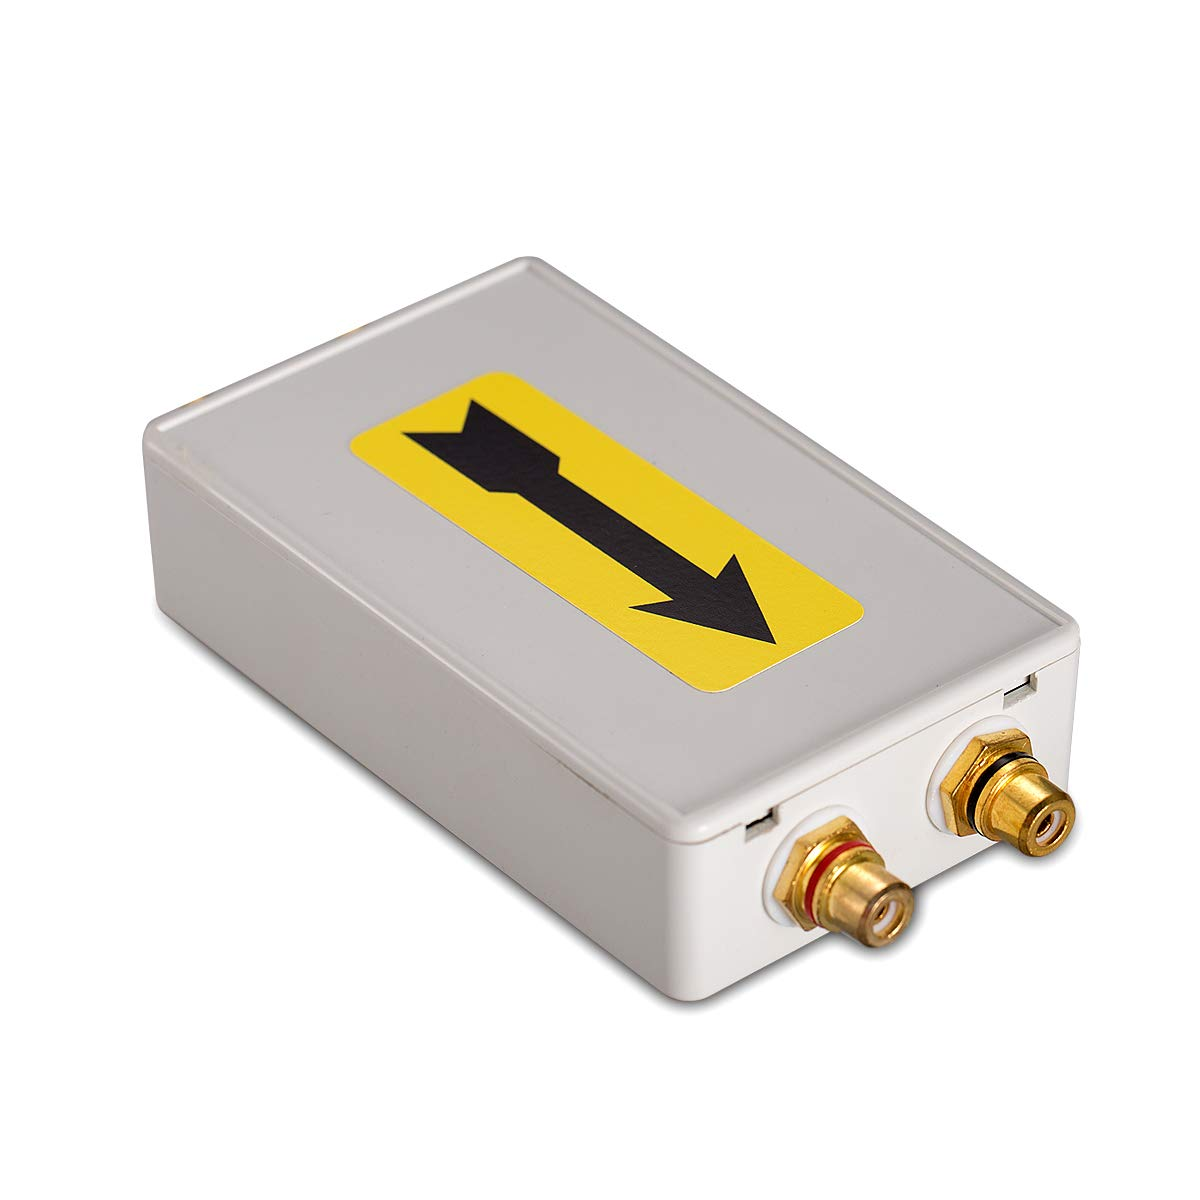 Nobsound Mini Phono Preamp Preamplifier Burn-in Device HiFi Stereo CD Player to LP Vinyl Turntable Record Player Signal